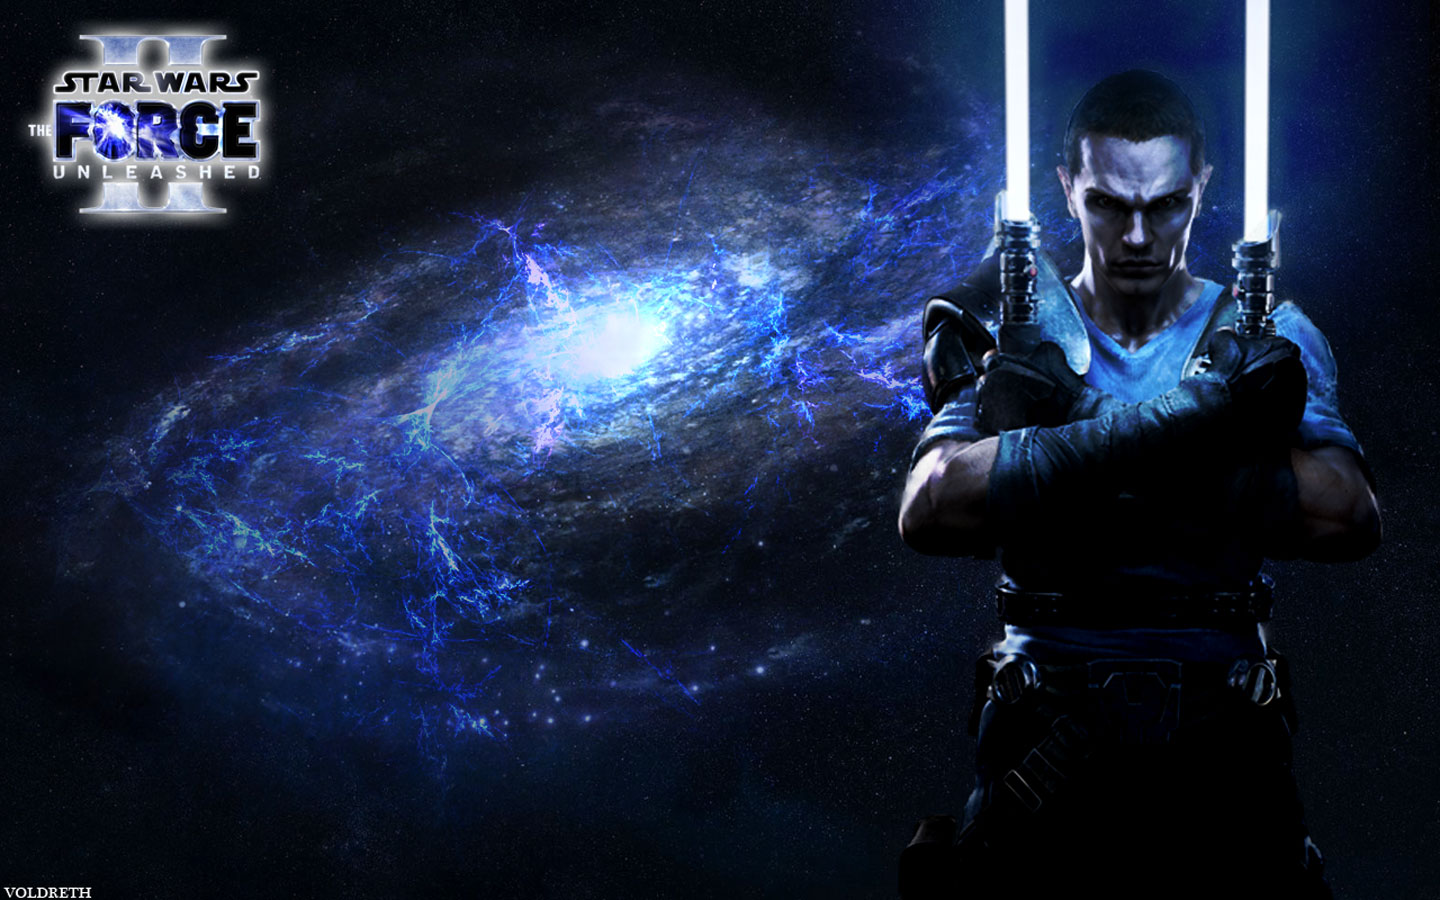 Star Wars The Force Unleashed 2 Wallpapers: Starkiller Wallpaper